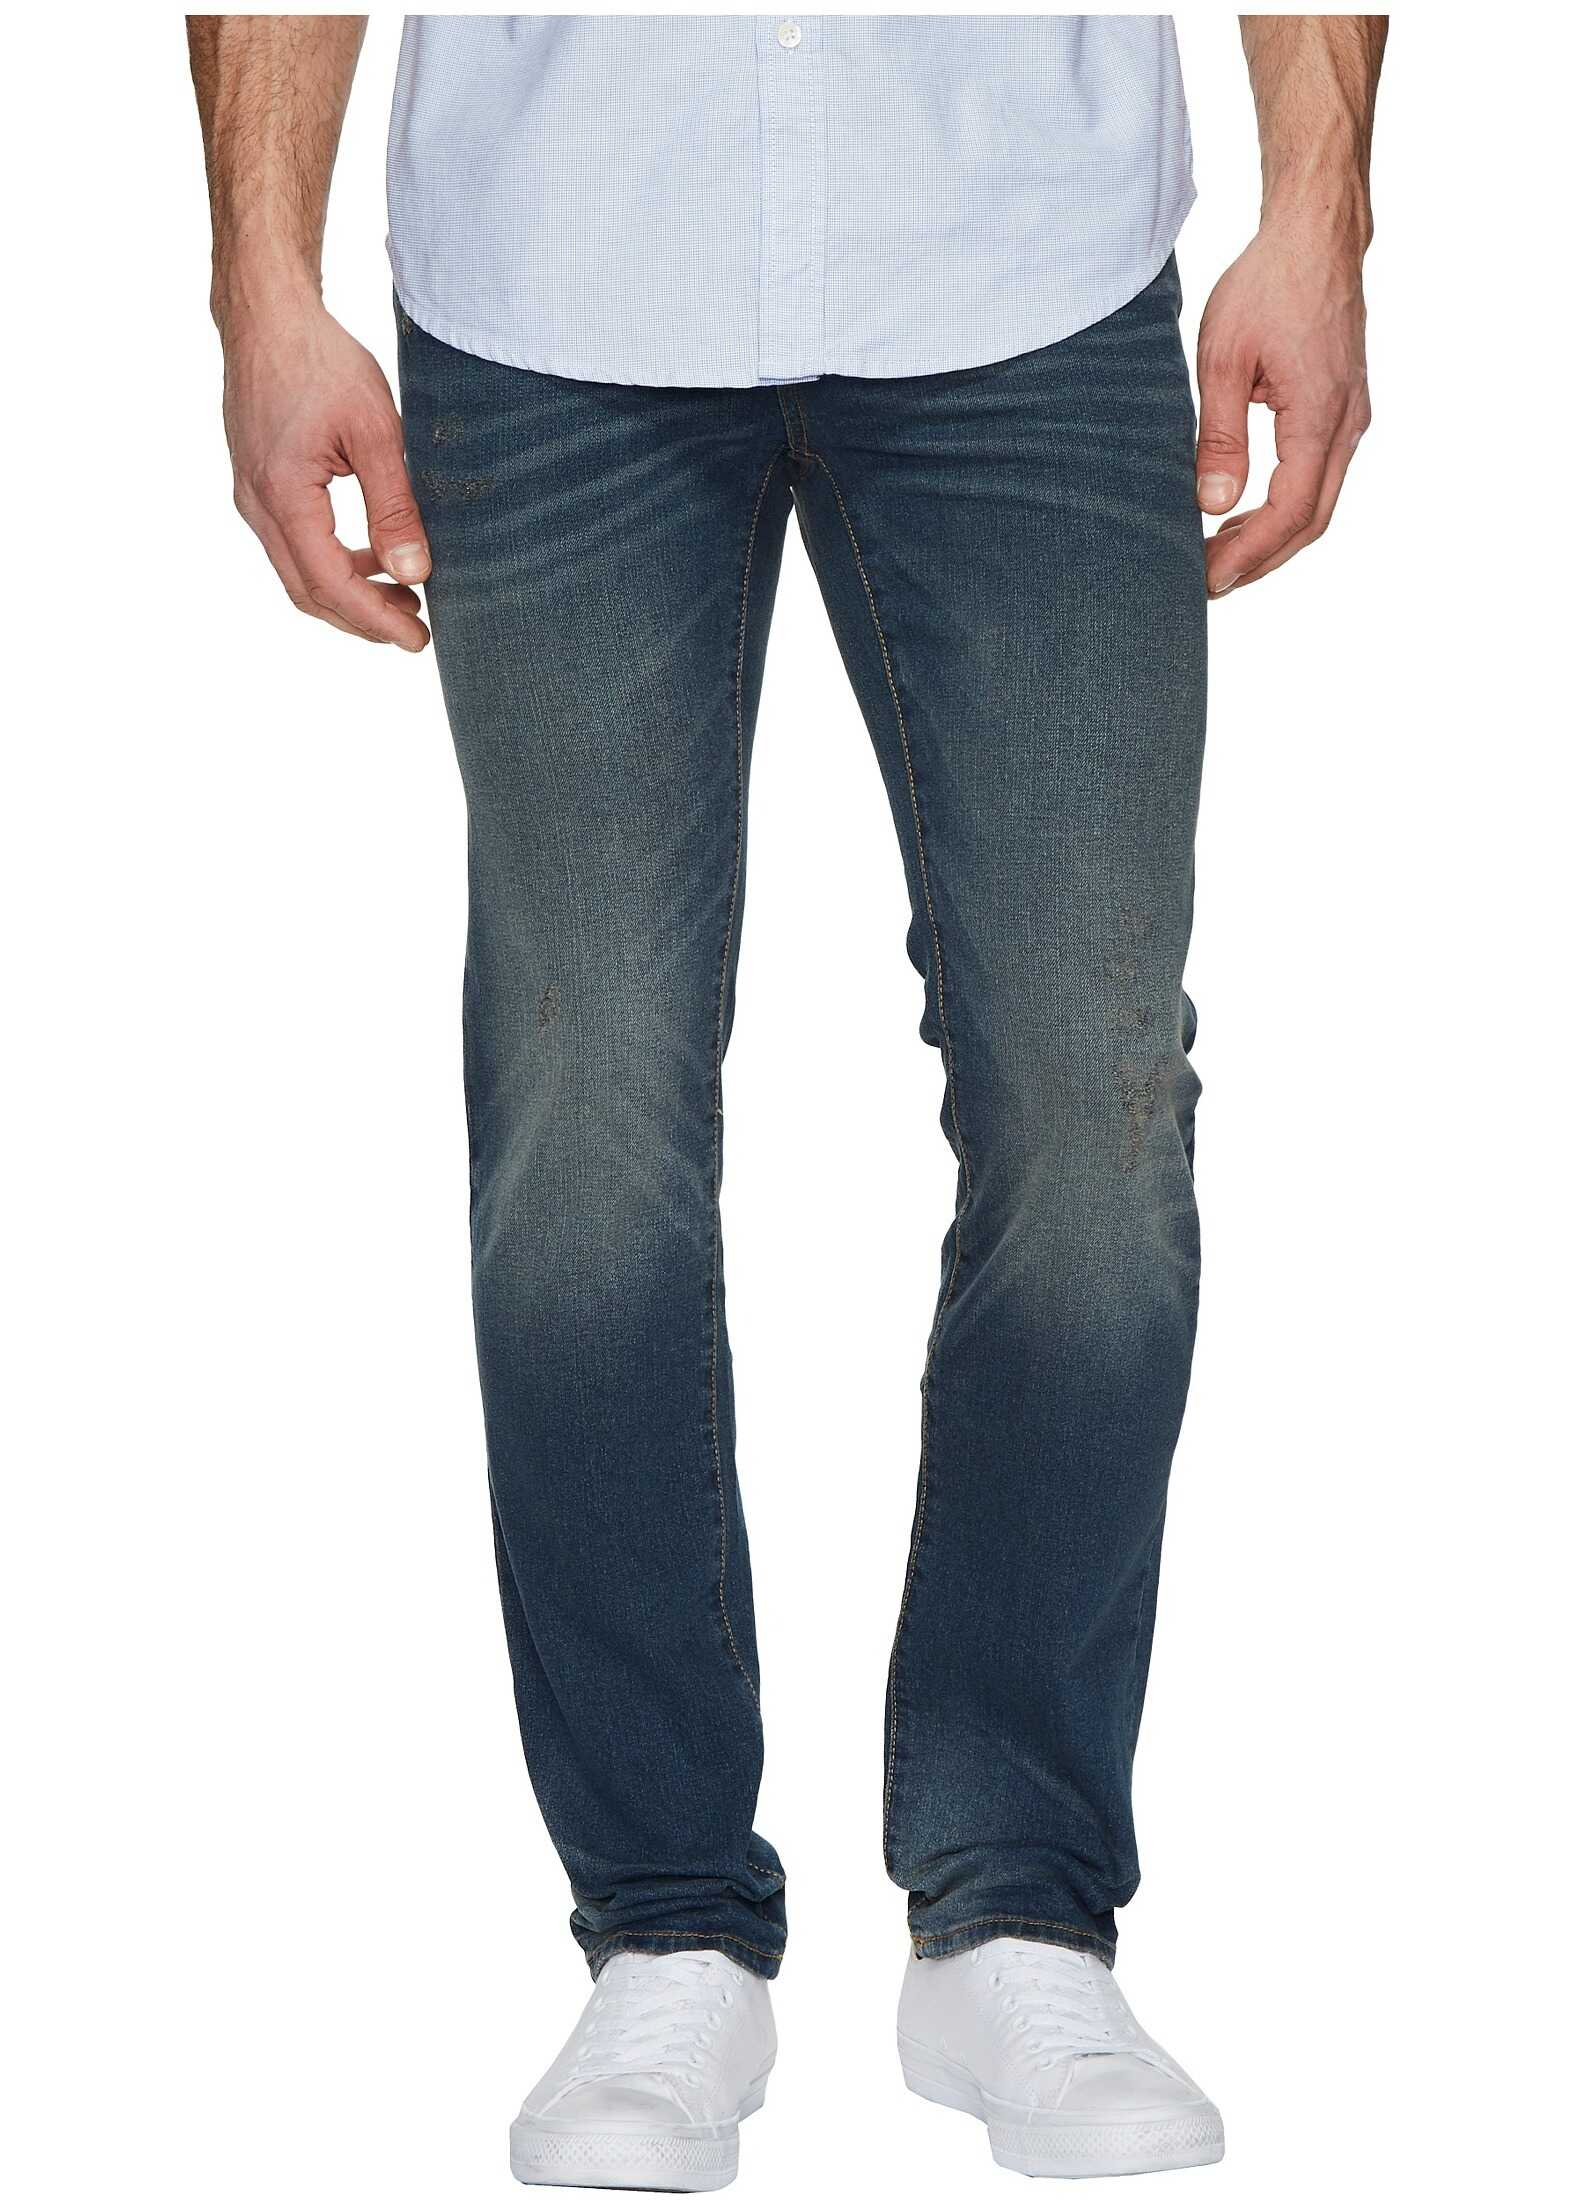 U.S. POLO ASSN. Five-Pocket Stretch Slim Jeans in Tint Tint